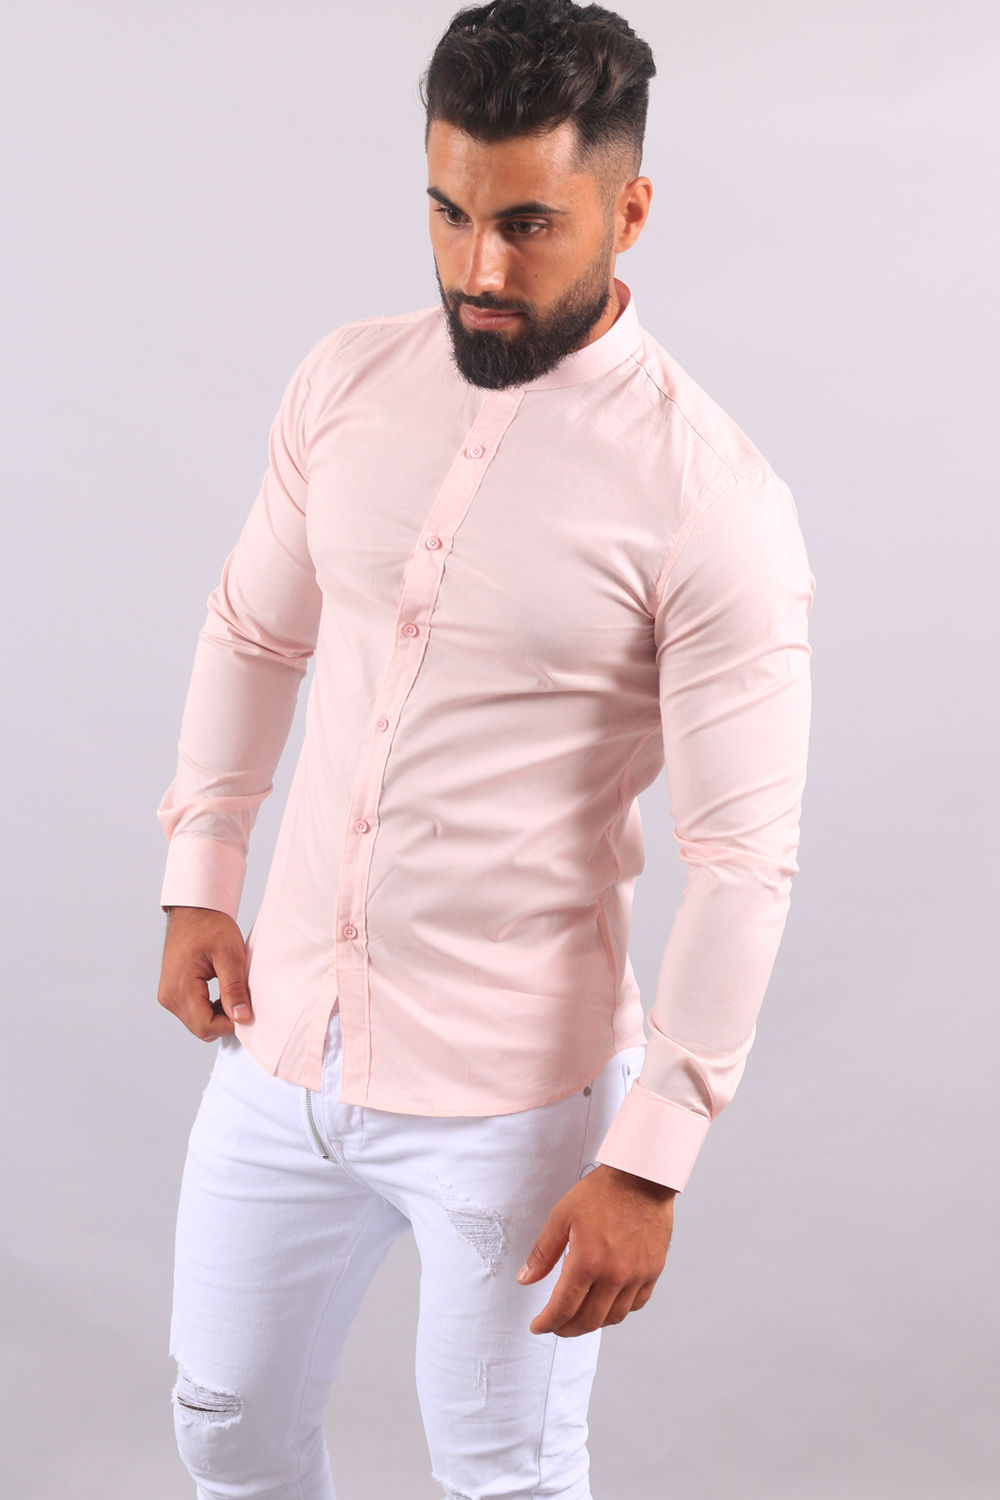 acheter populaire 4cfd5 cde60 chemise homme cintré rose col Mao 202